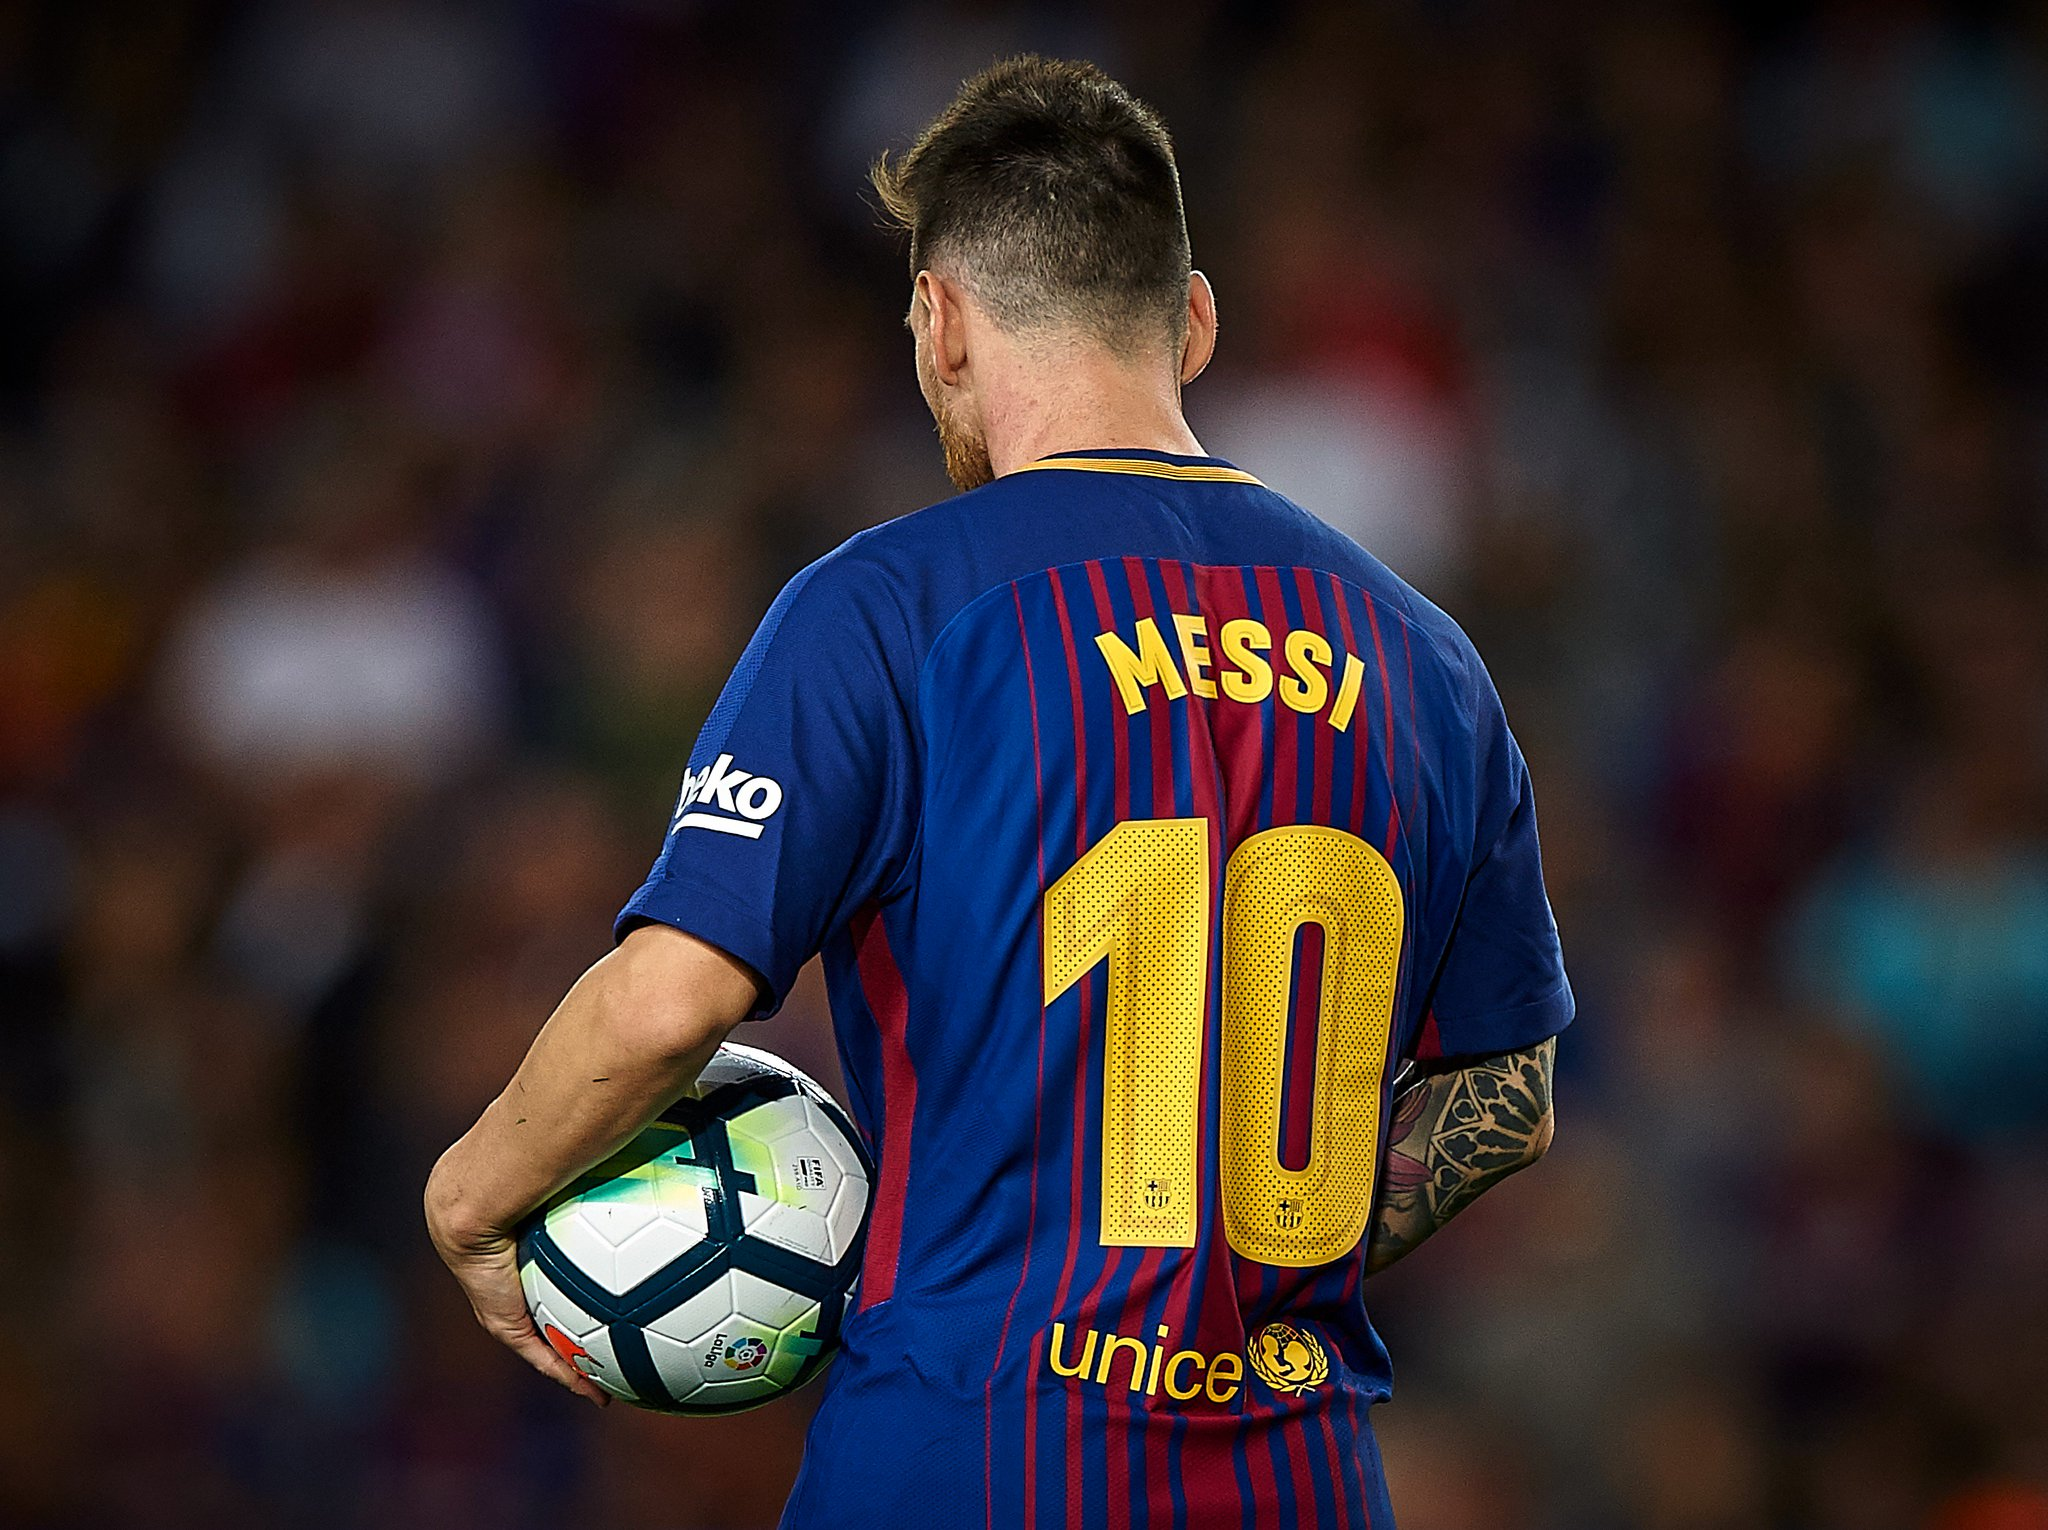 Leo Messi has now scored 39 hat-tricks for Barcelona in all competitions...   Most memorable? ⚽️⚽️⚽️⚽️ #UCL https://t.co/AqSUVbcpBJ